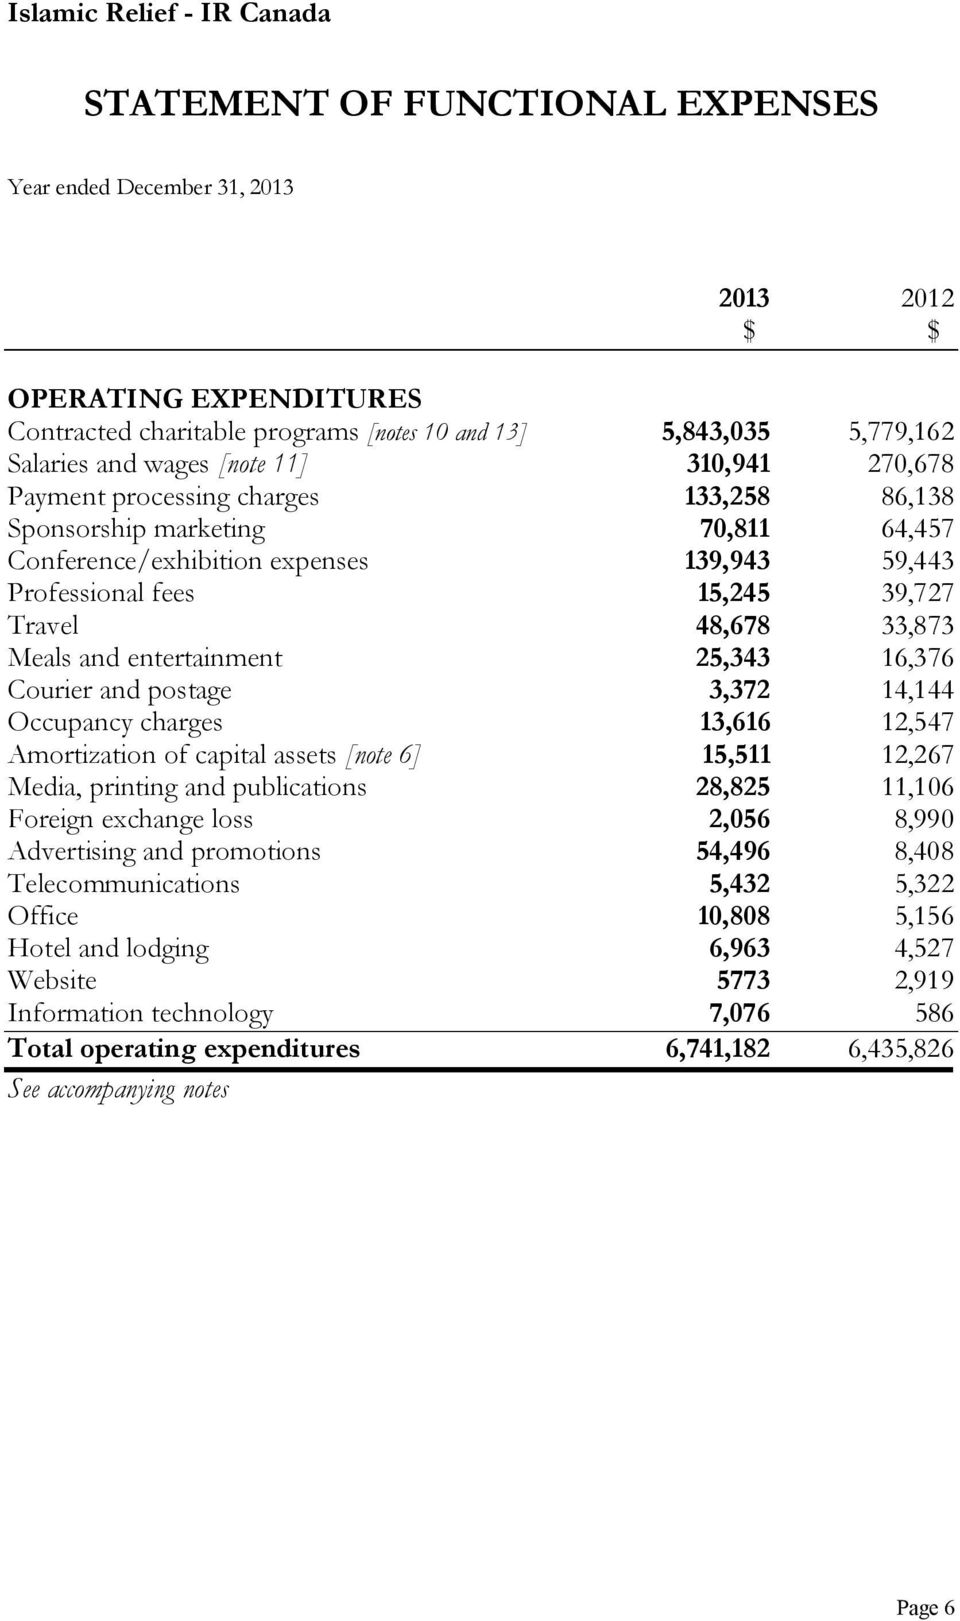 entertainment 25,343 16,376 Courier and postage 3,372 14,144 Occupancy charges 13,616 12,547 Amortization of capital assets [note 6] 15,511 12,267 Media, printing and publications 28,825 11,106